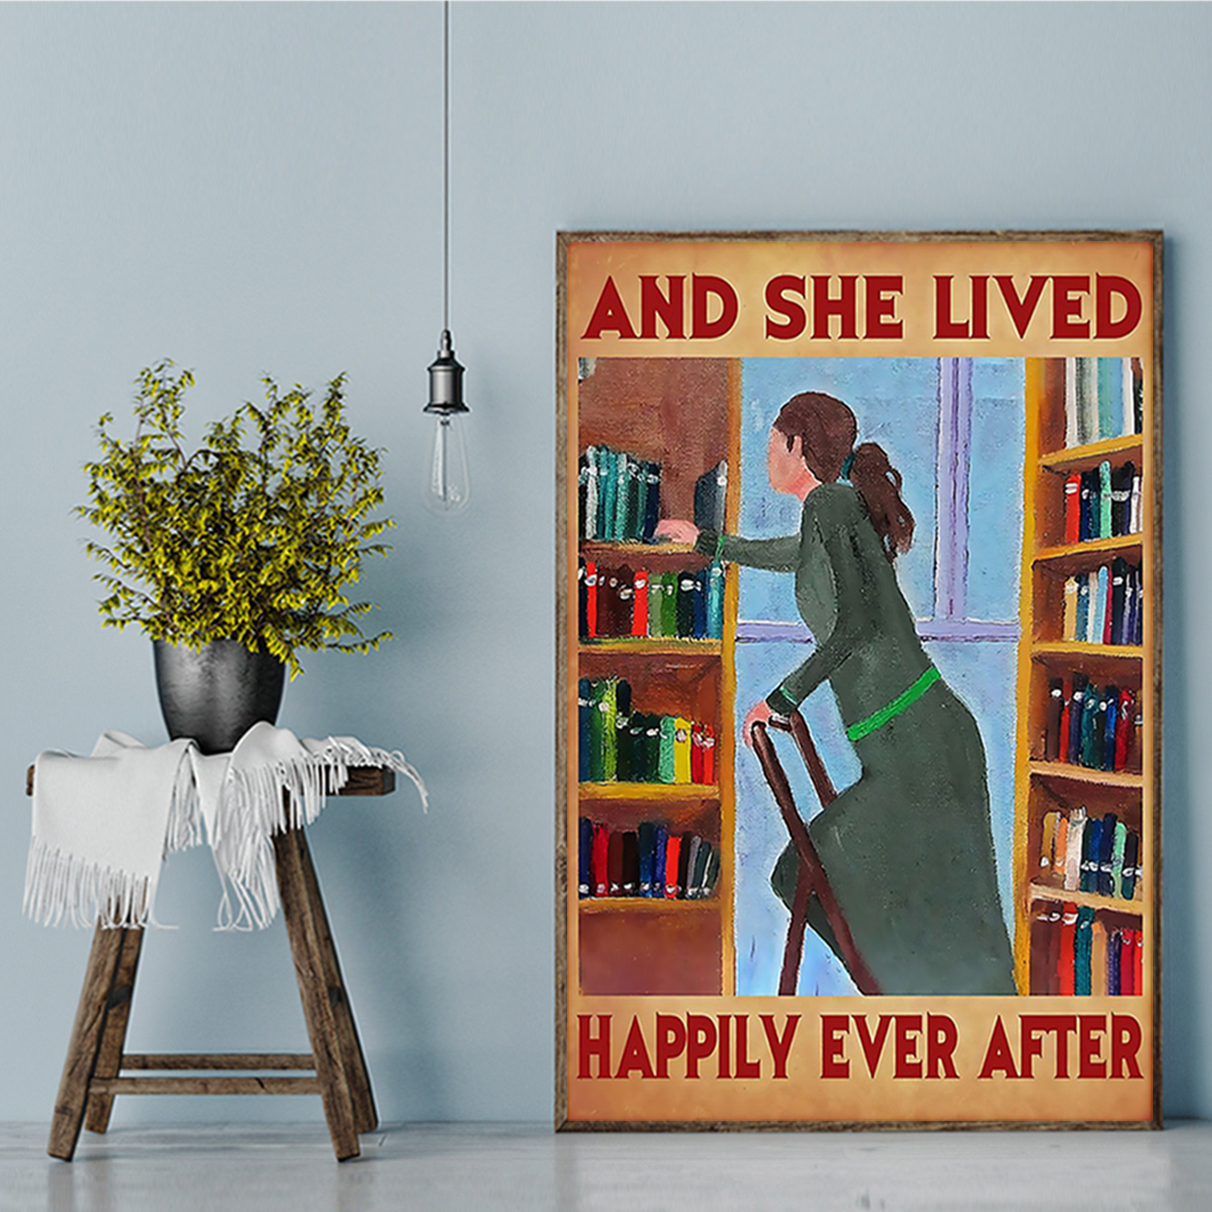 Librarian and she lived happily ever after poster A2